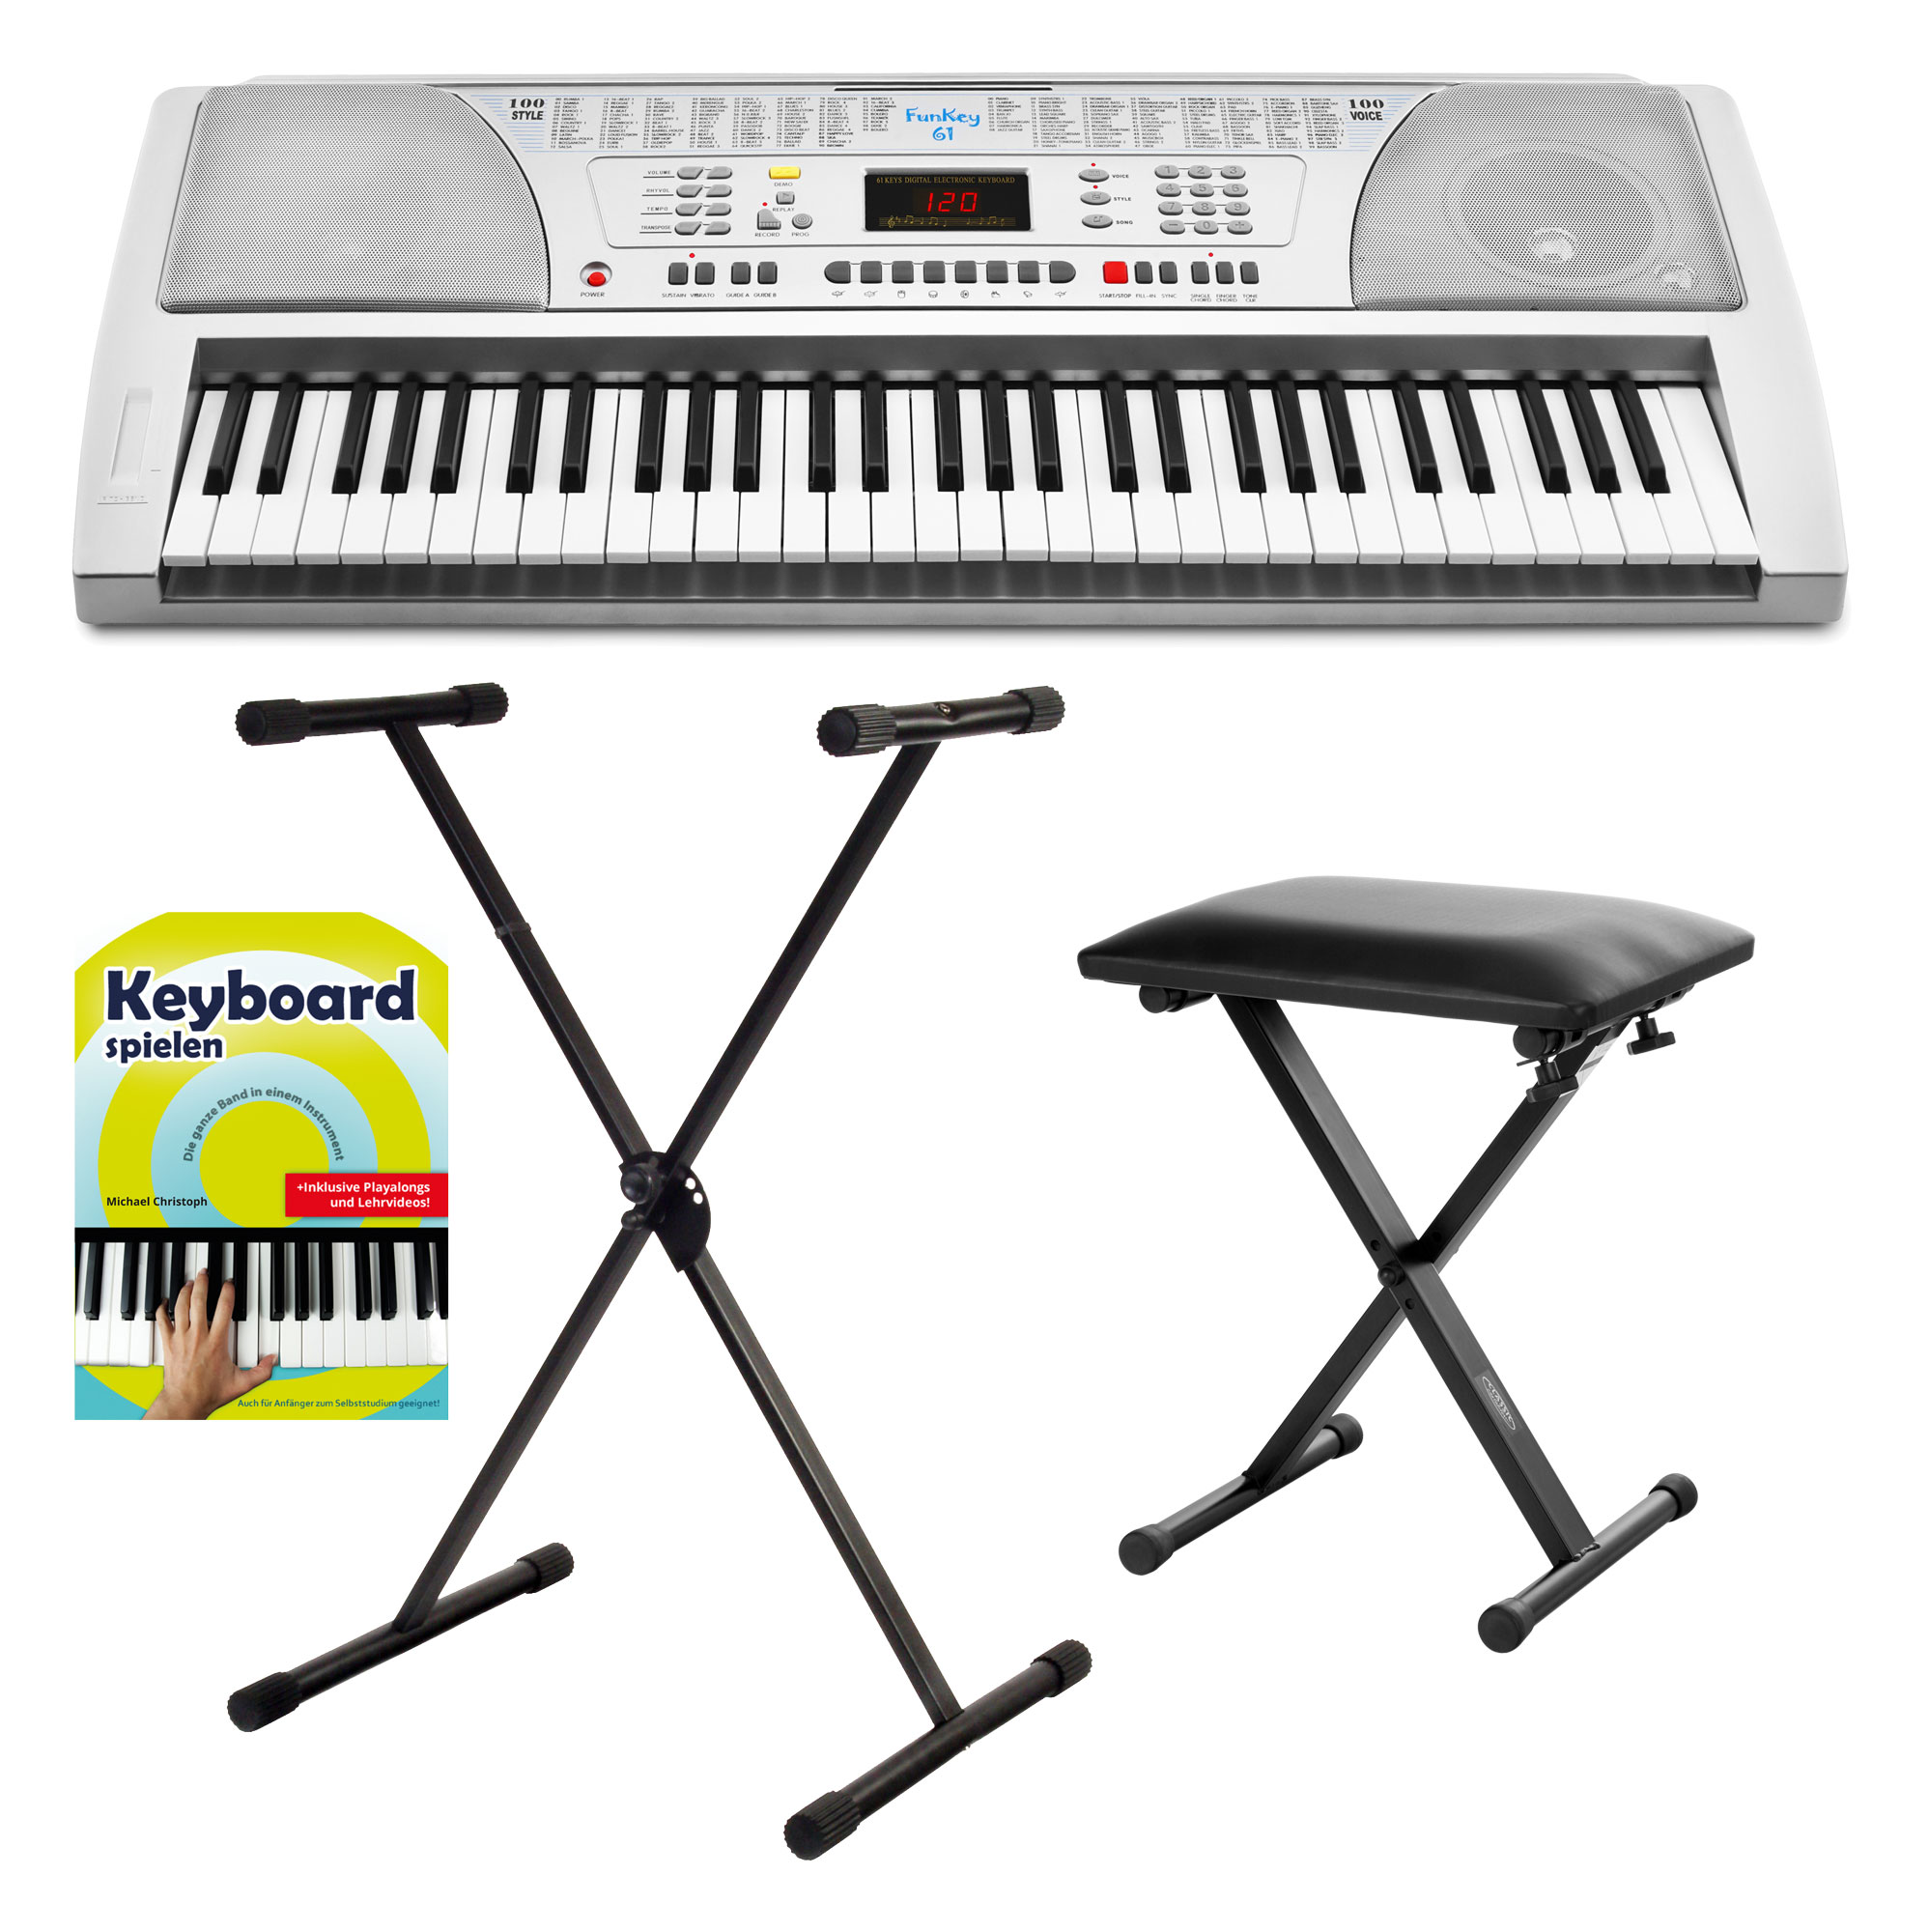 Homekeyboards - FunKey 61 Keyboard SET inkl. Keyboardständer Bank Noten CD - Onlineshop Musikhaus Kirstein